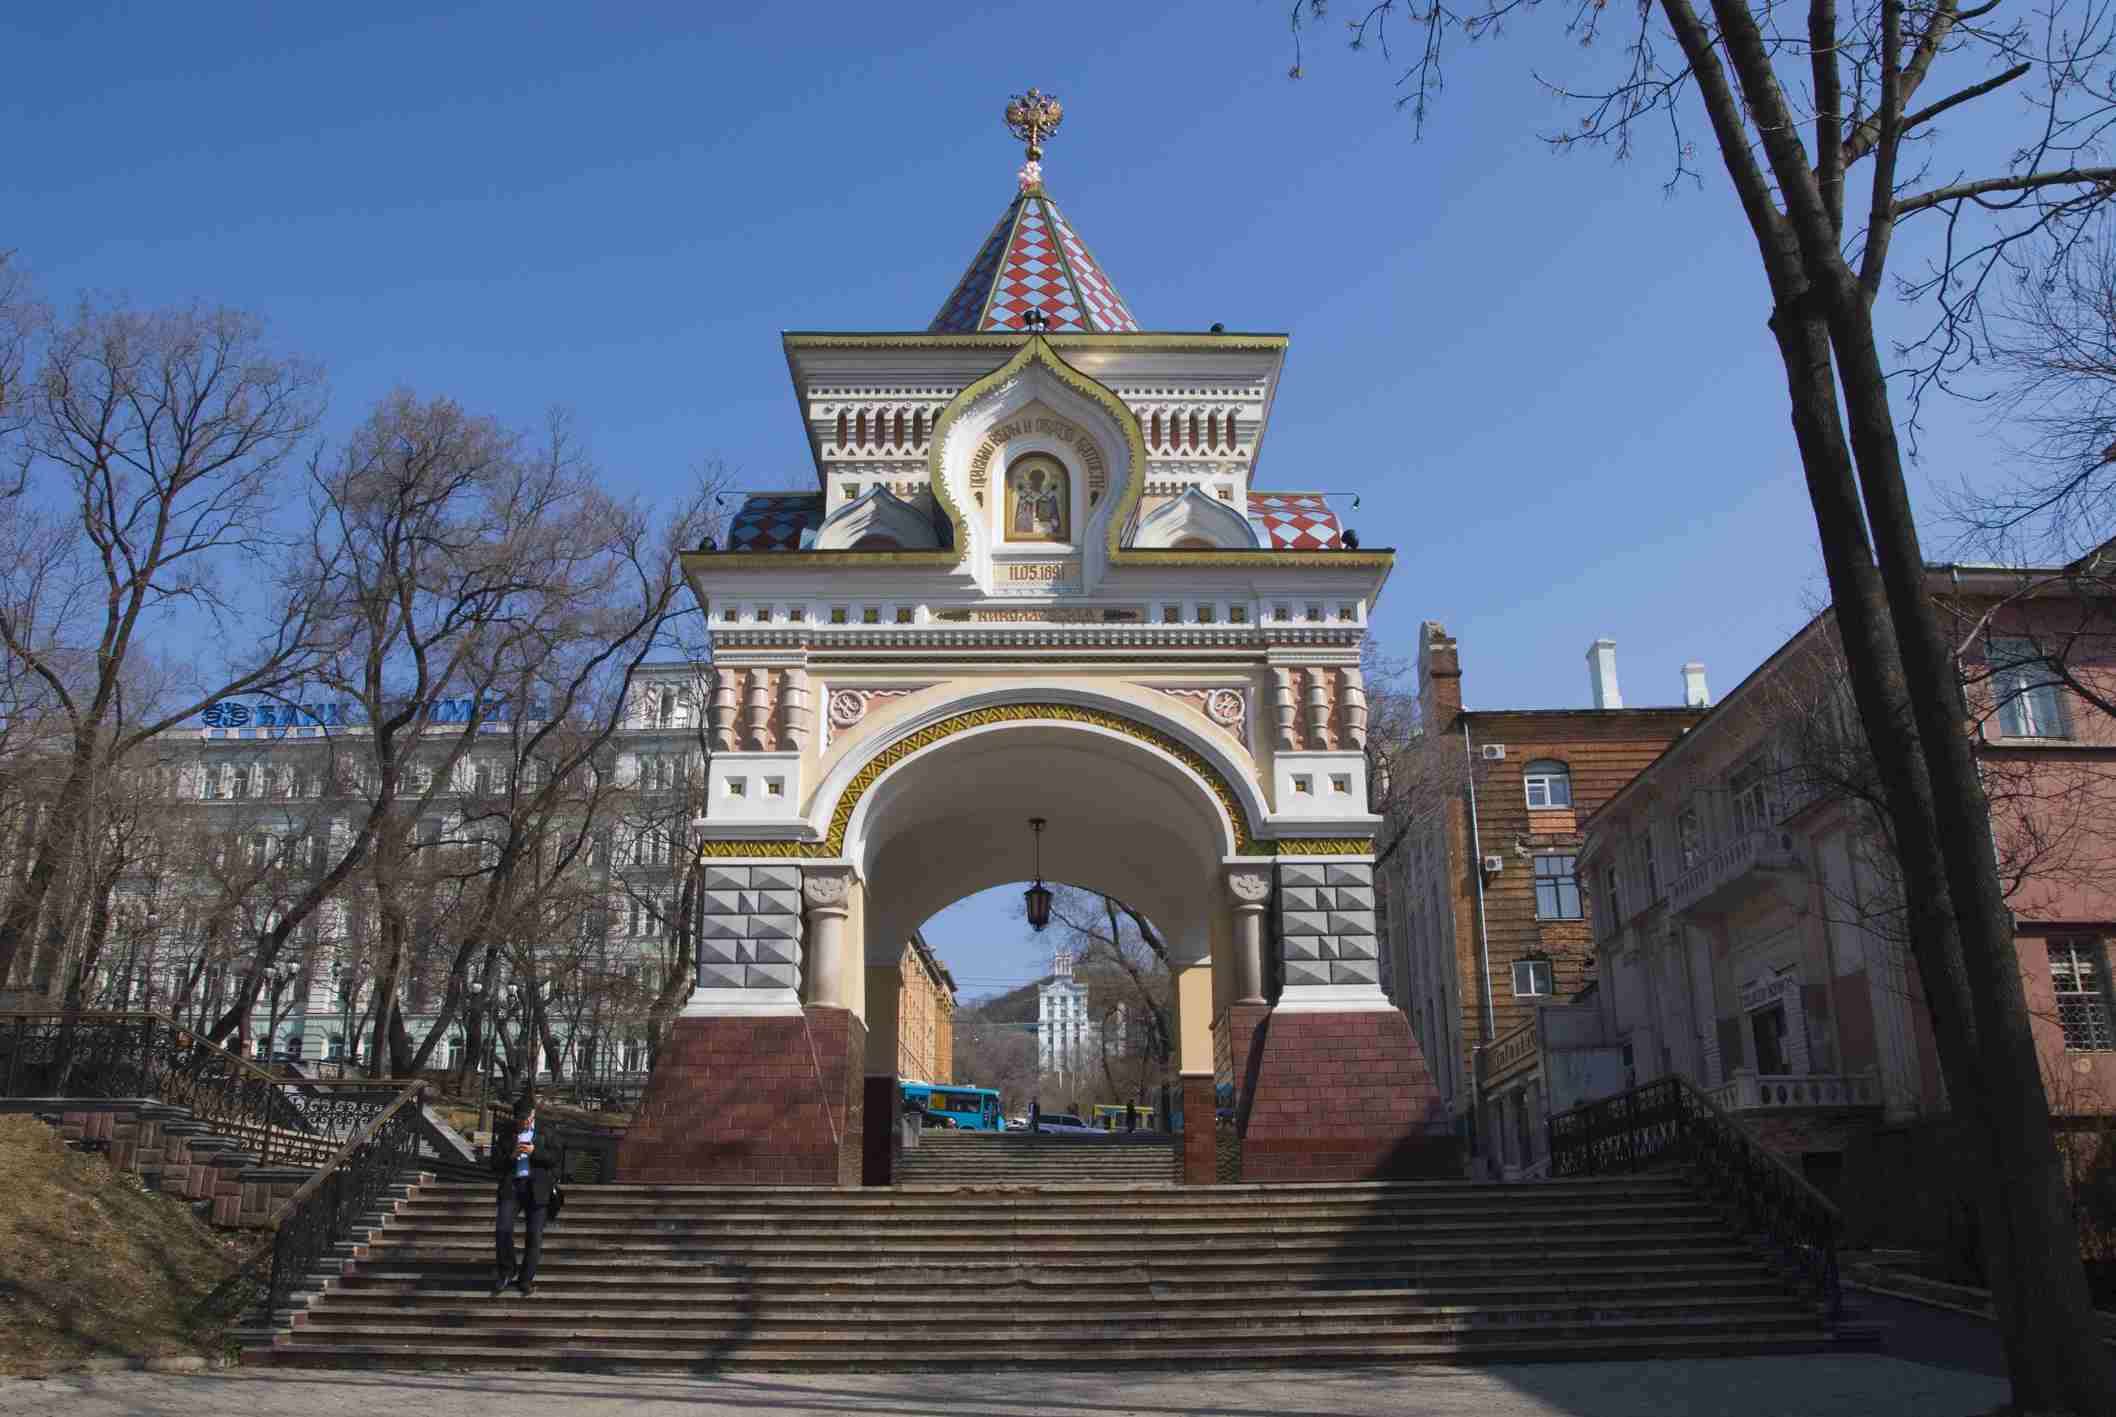 Reconstructed Triumphal Arch built for Tsar Nicholas II.